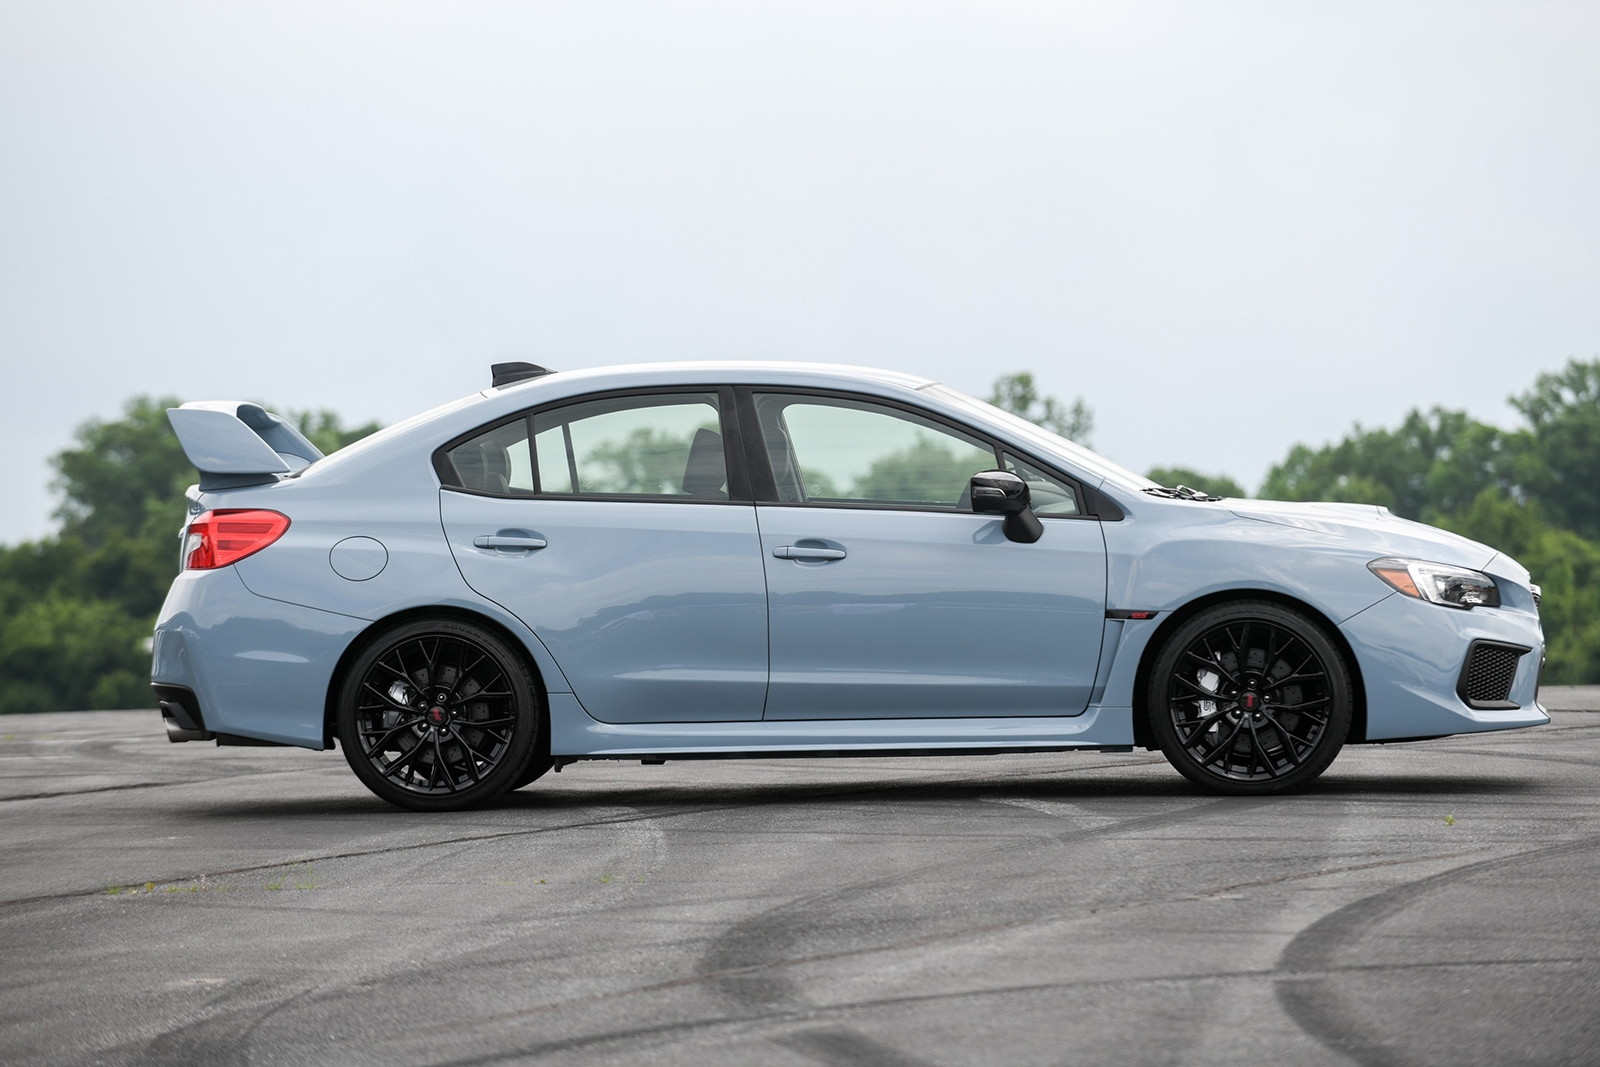 subaru-wrx-and-wrx-sti-series-gray-05